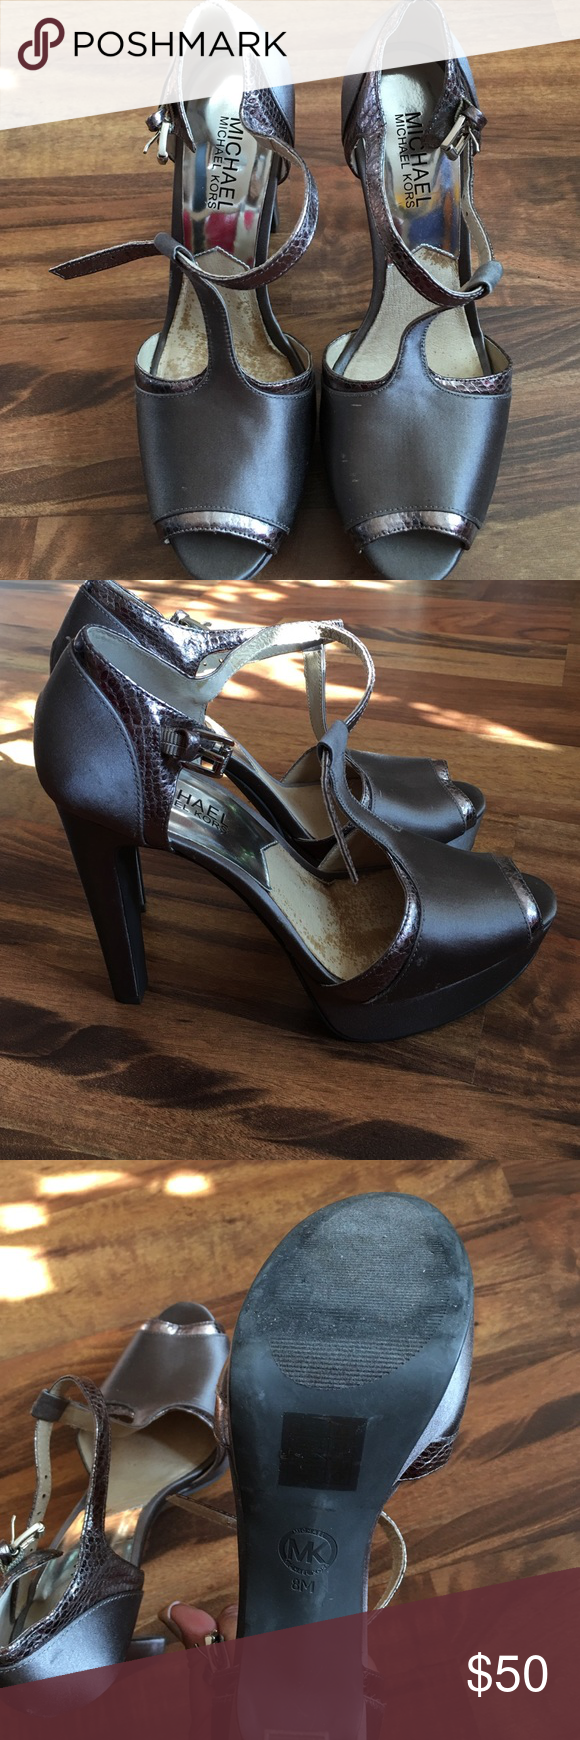 Michael Kors Collection beautiful heels Great condition..check the pictures carefully.Great for prom and weddings.. MICHAEL Michael Kors Shoes Heels